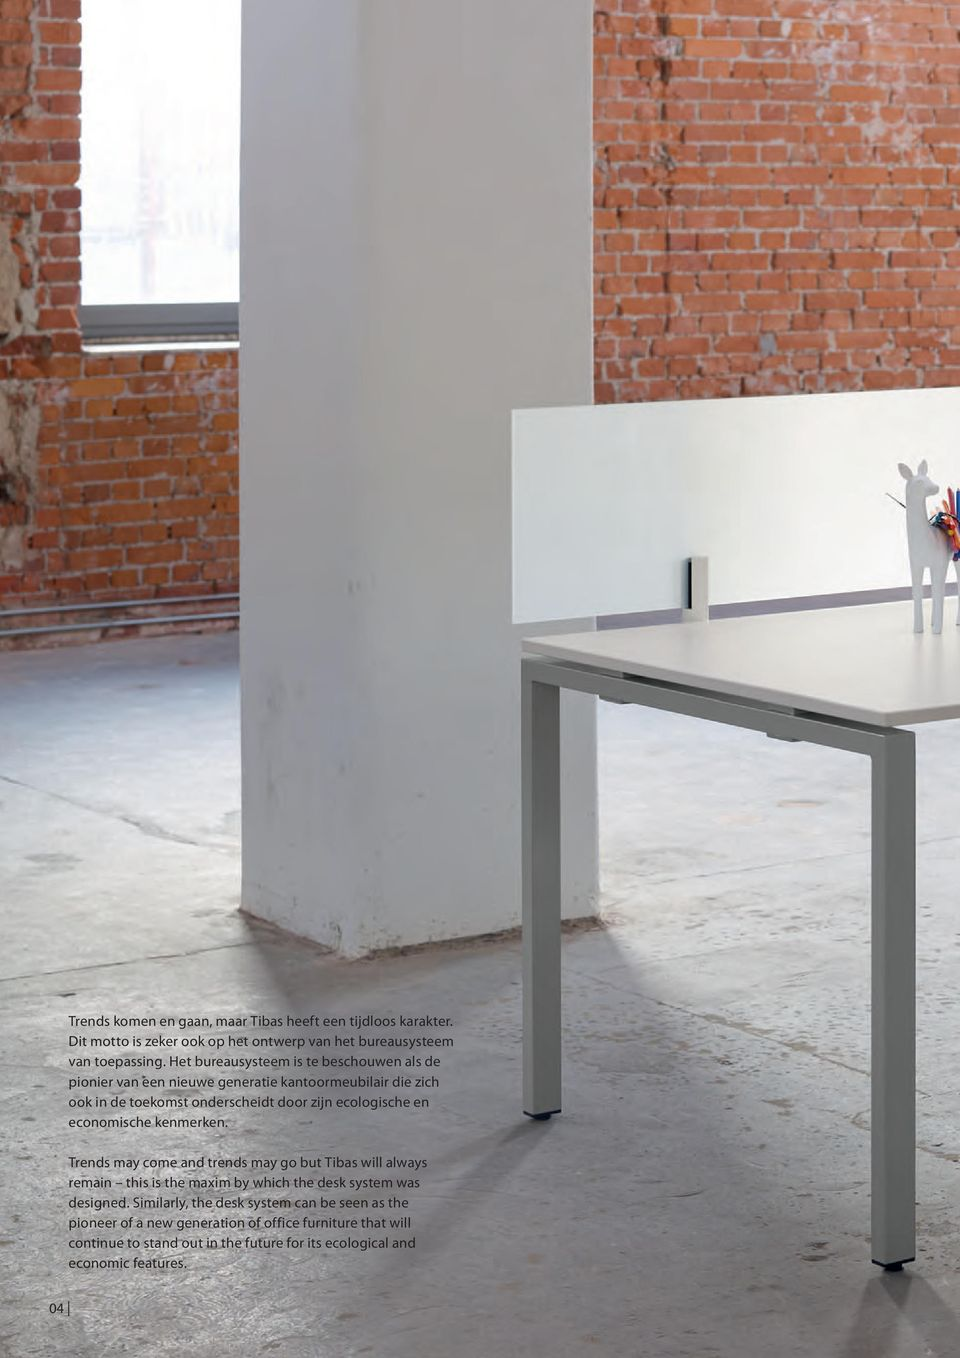 en economische kenmerken. Trends may come and trends may go but Tibas will always remain this is the maxim by which the desk system was designed.